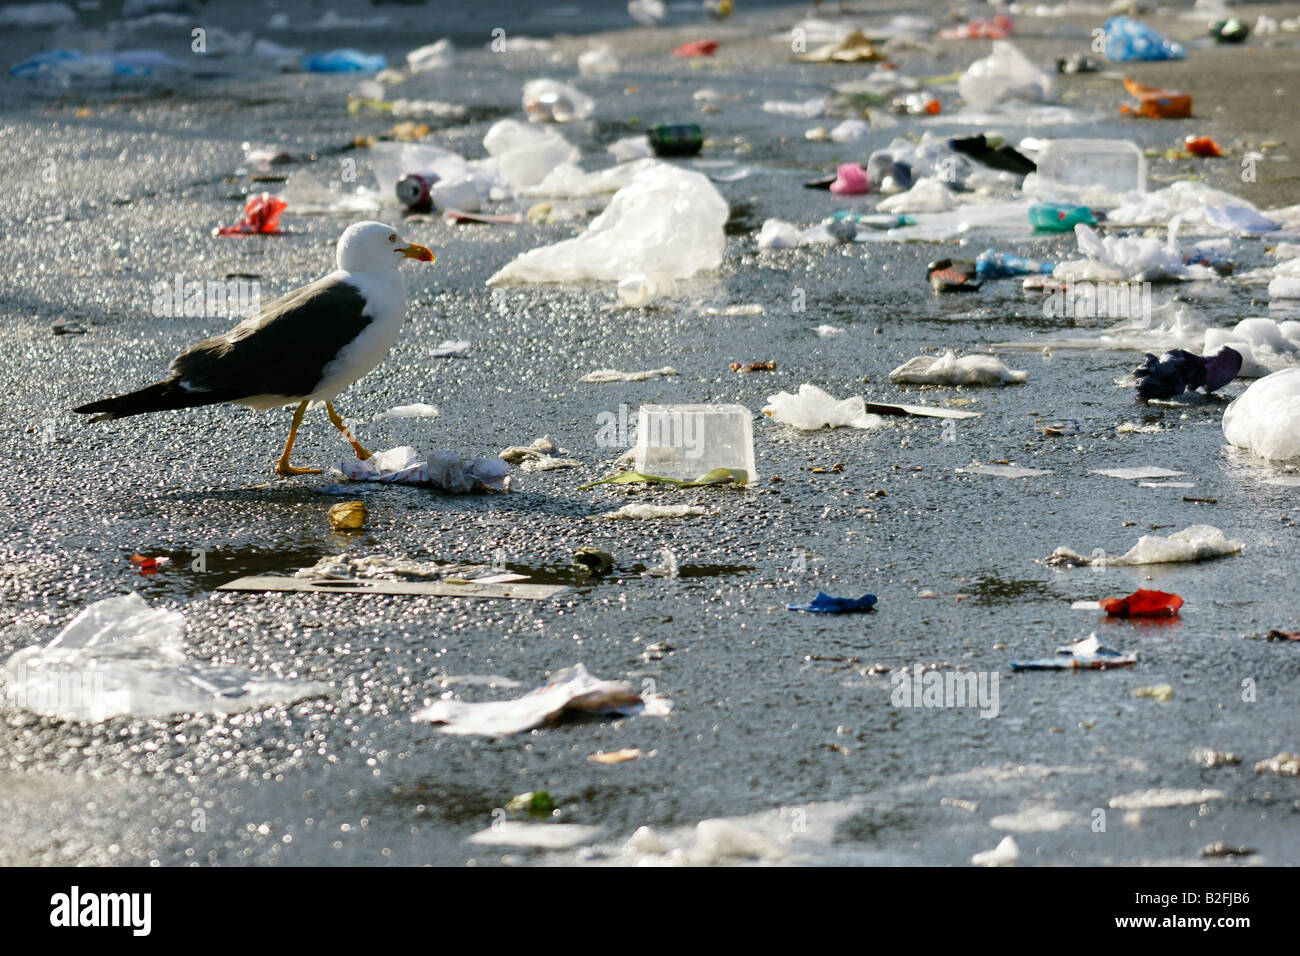 Seagull walking in horrible litter garbage mess at street in Rotterdam, Netherlands - Stock Image